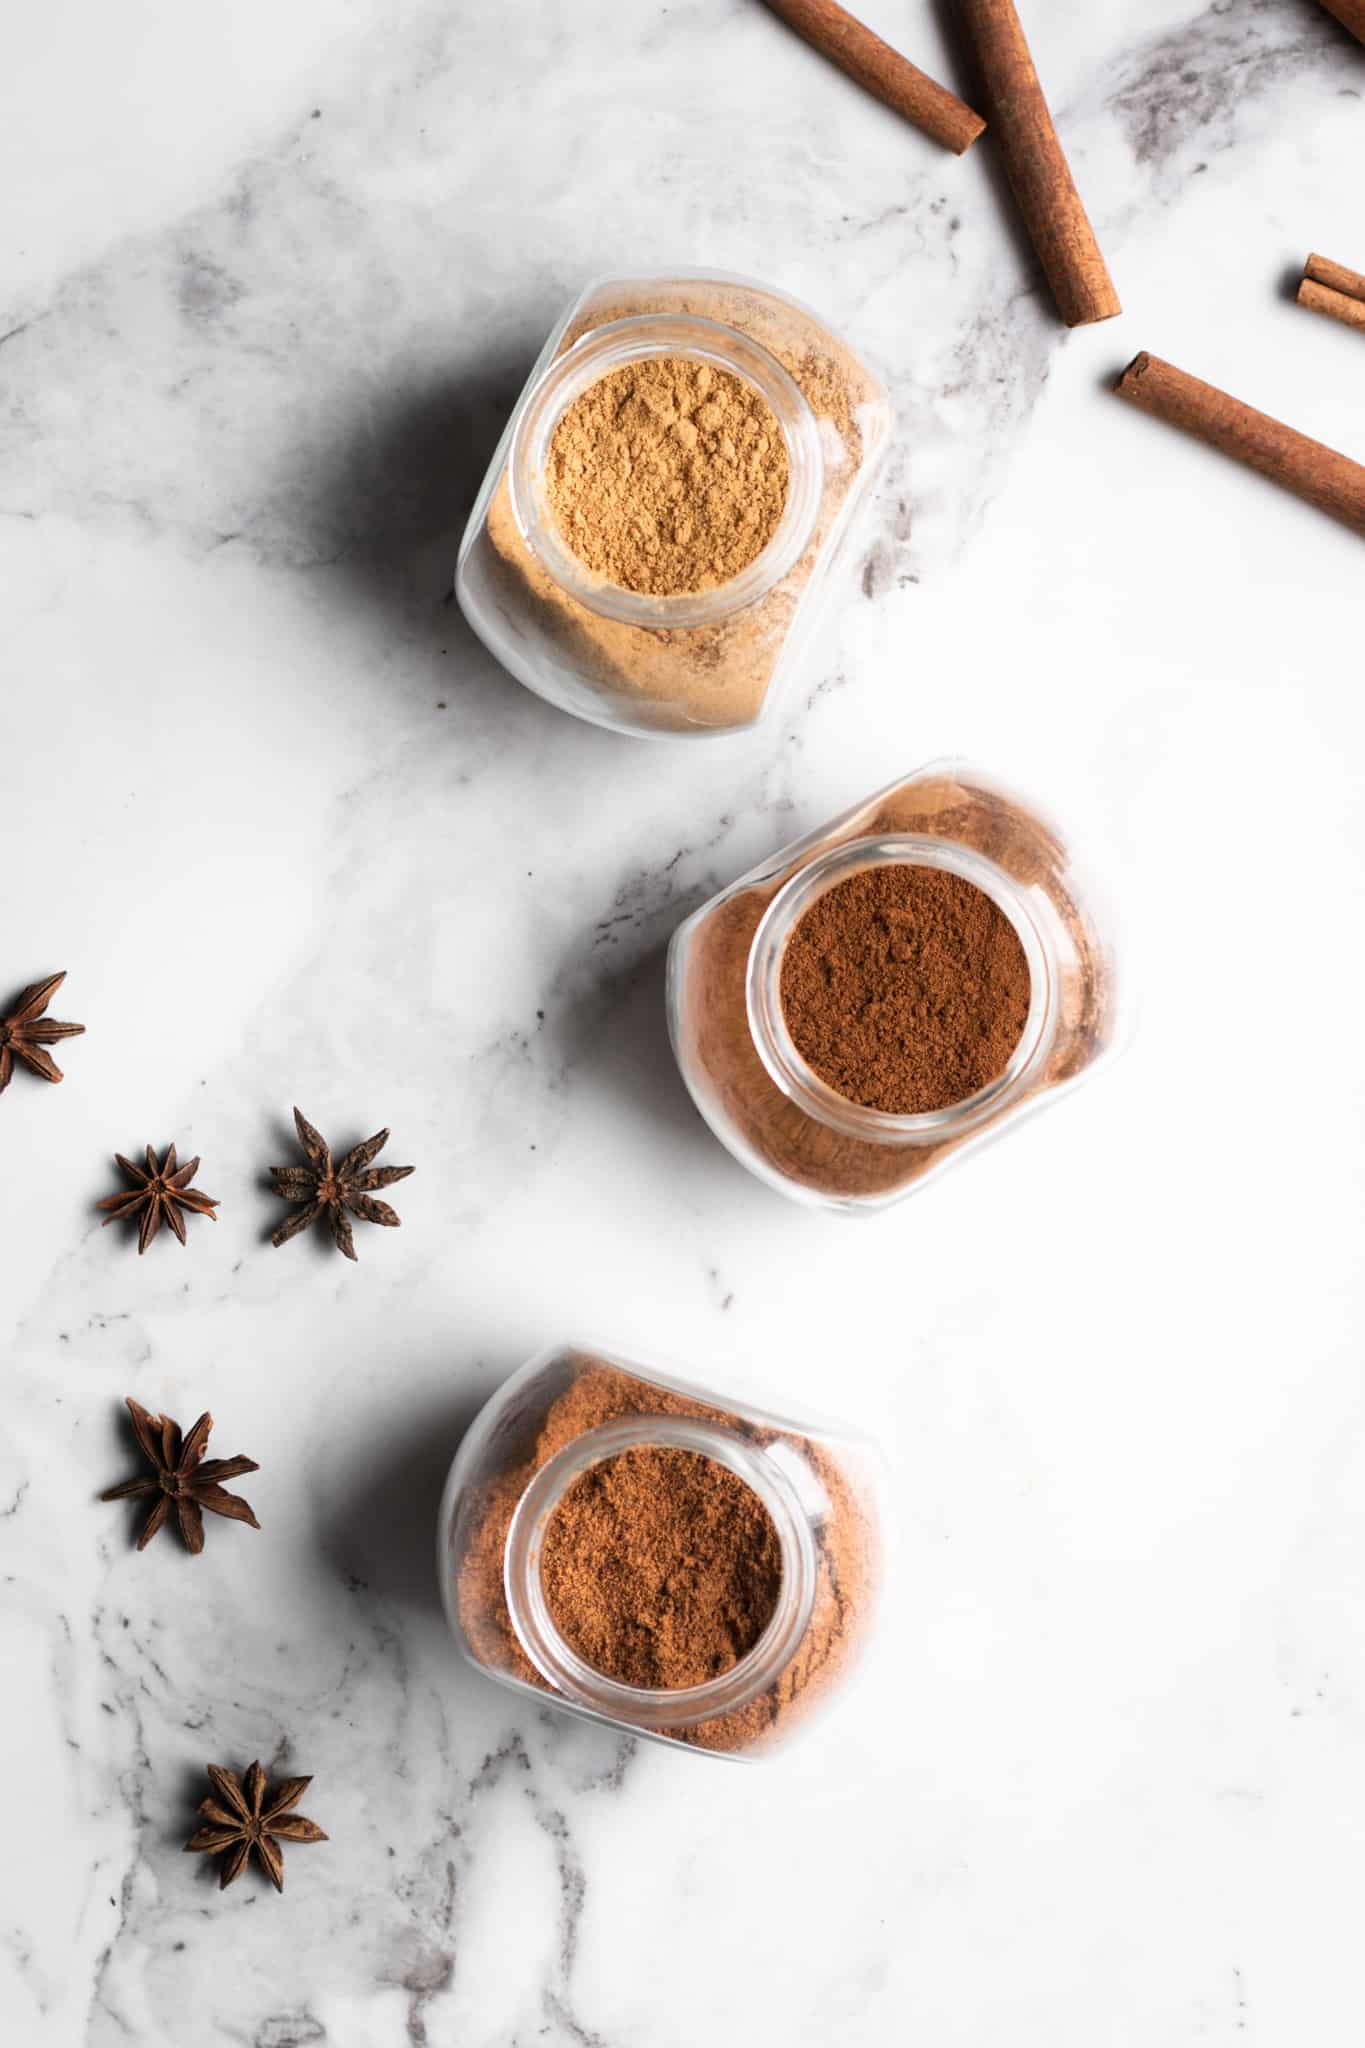 spices in jars with cinnamon sticks and star anise